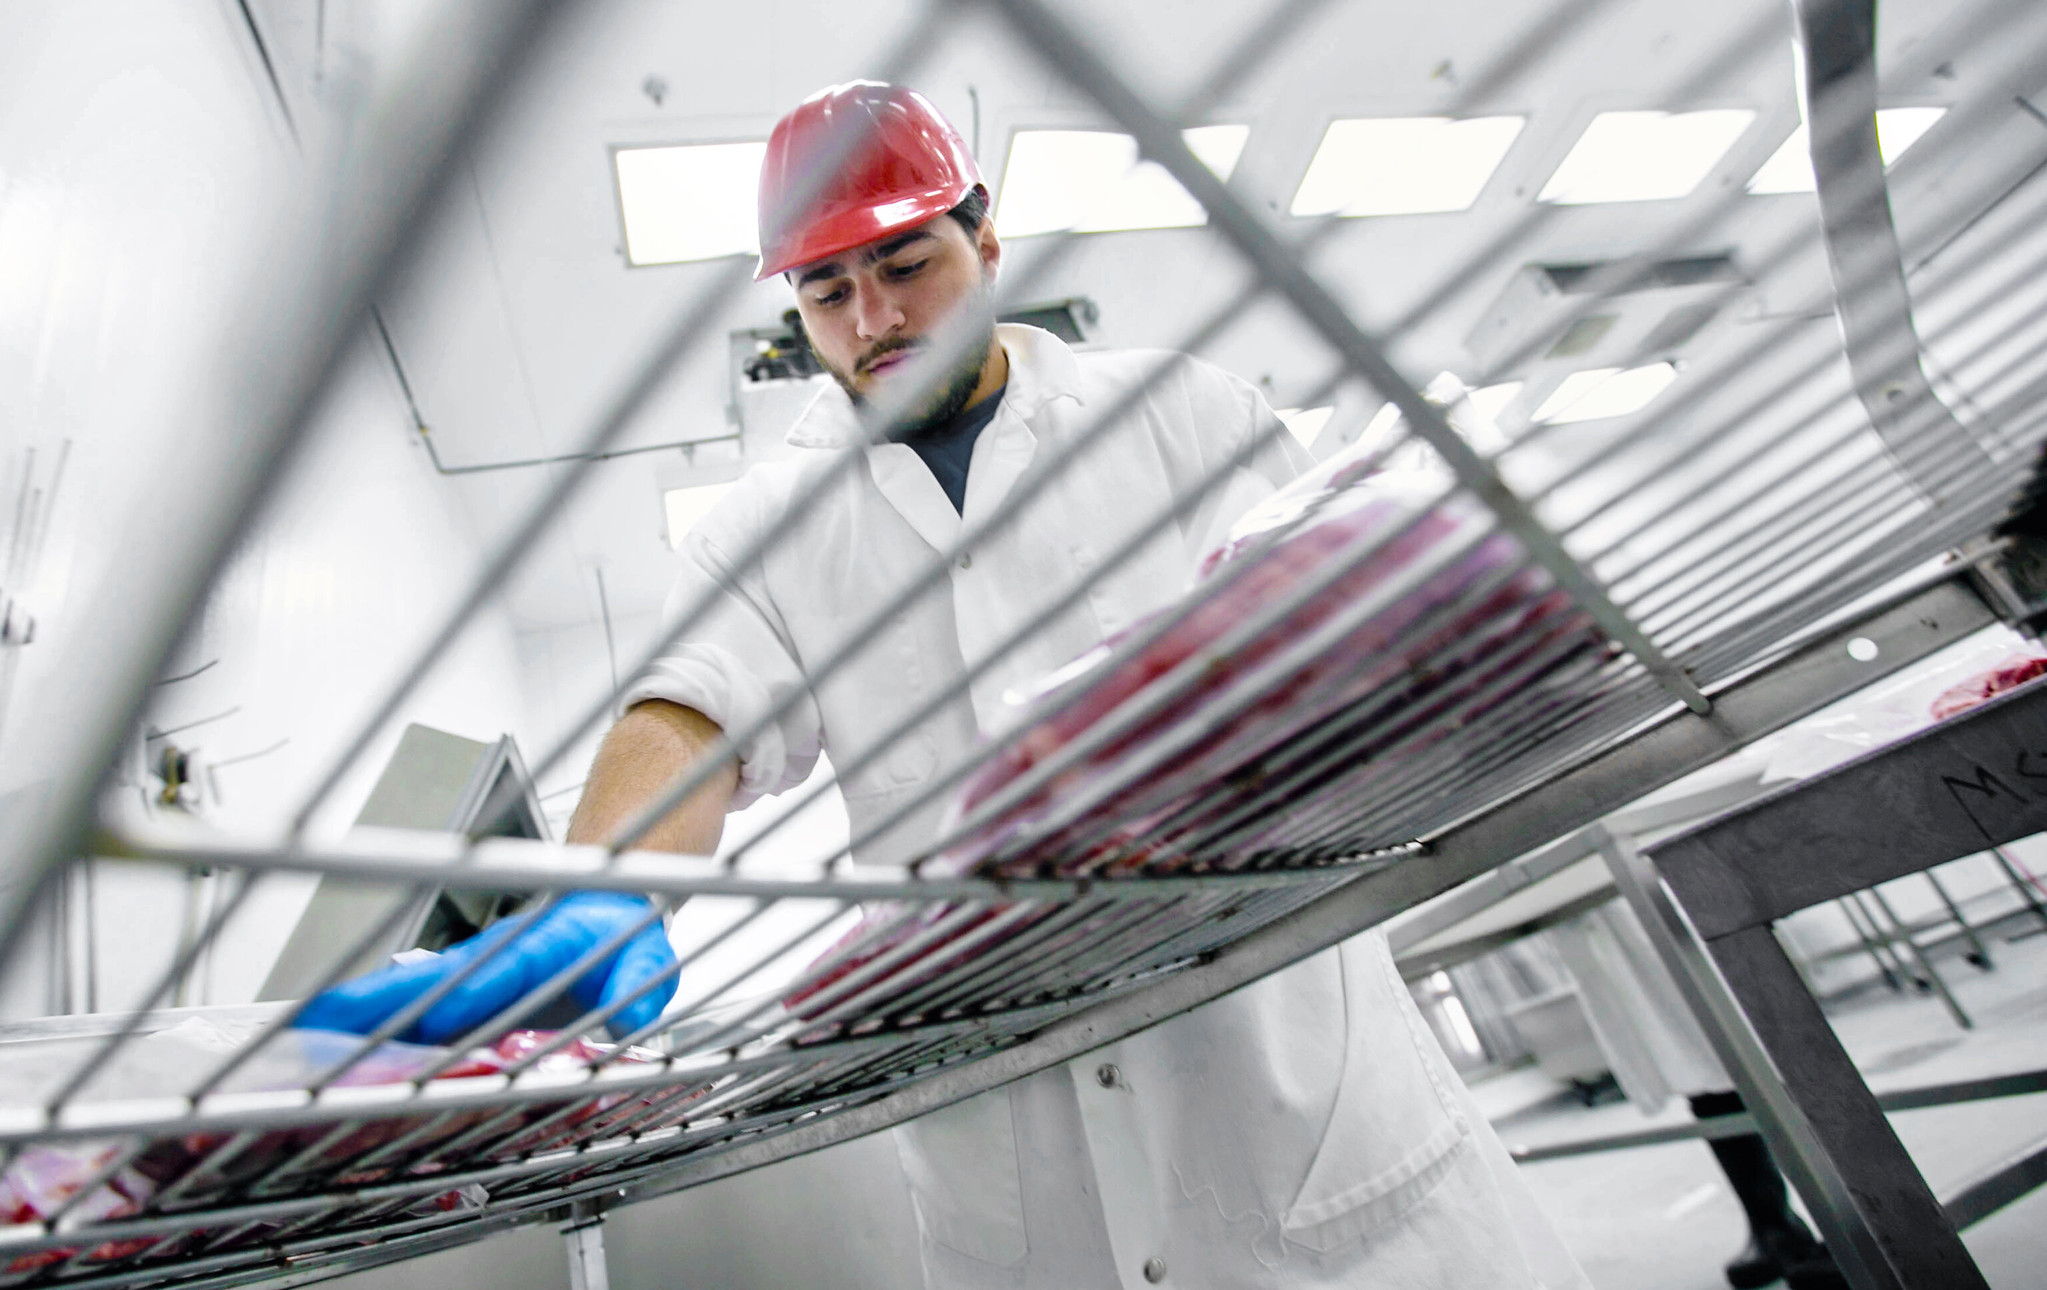 Could Lab-Grown Meat Be the Next New Food?